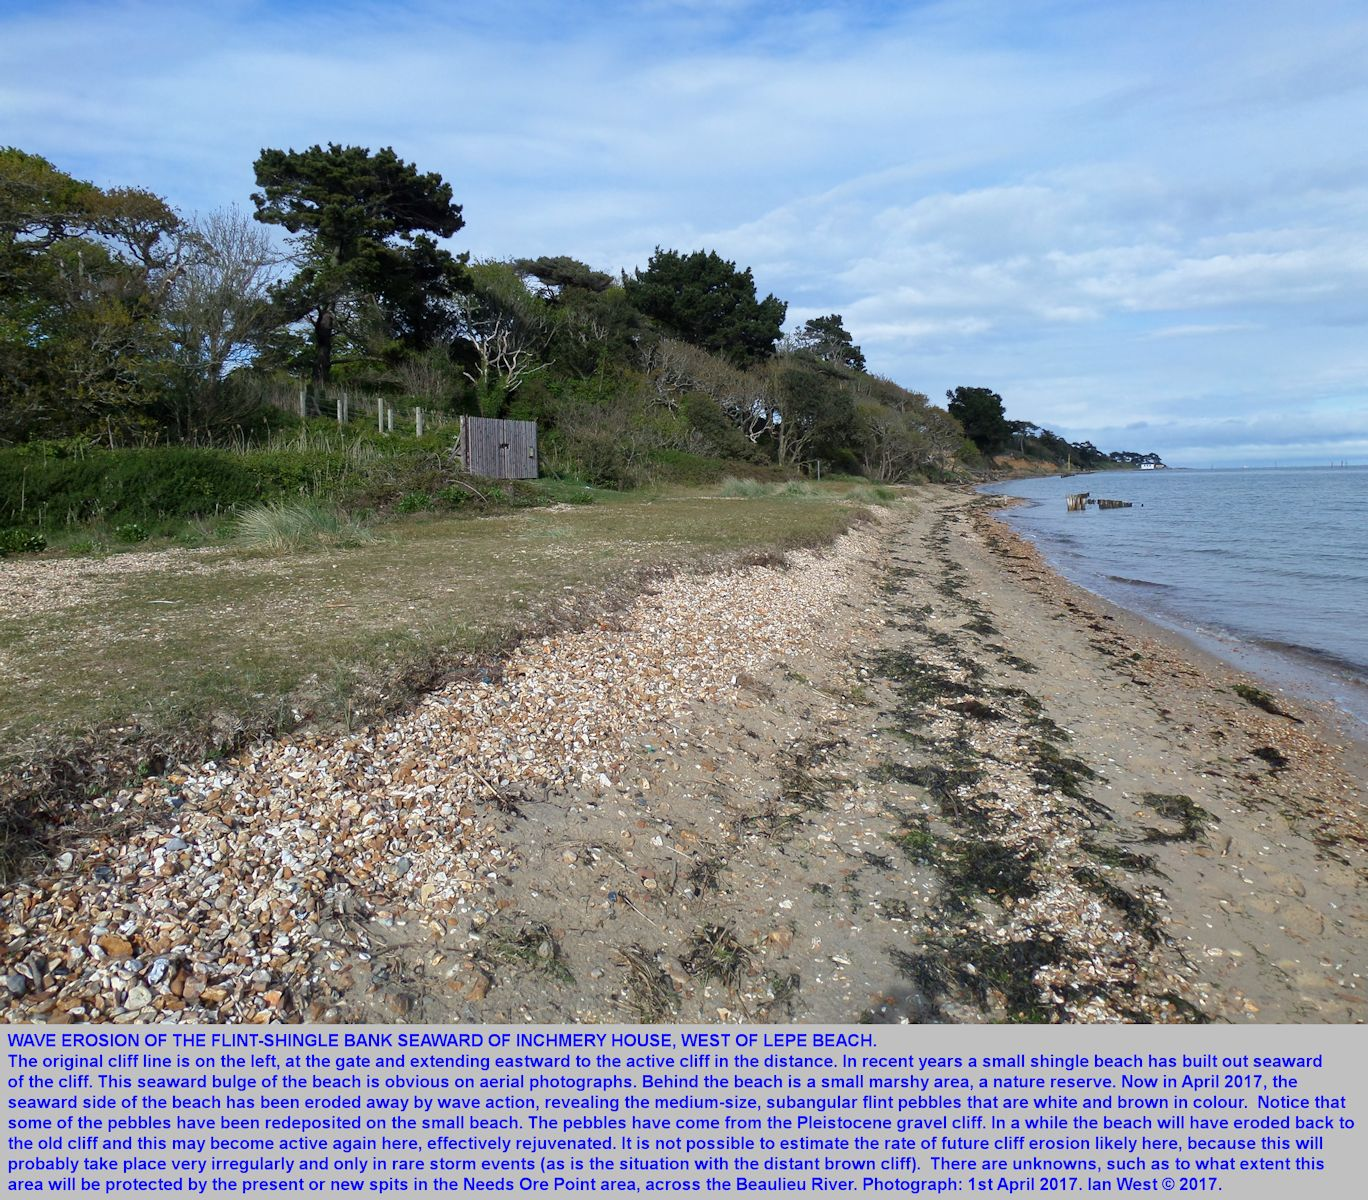 Erosion cuts a miniature cliff and reveals the flint pebbles in the small shingle bank at Inchmery  House, west of Lepe Beach, Hampshire, 1st May 2017